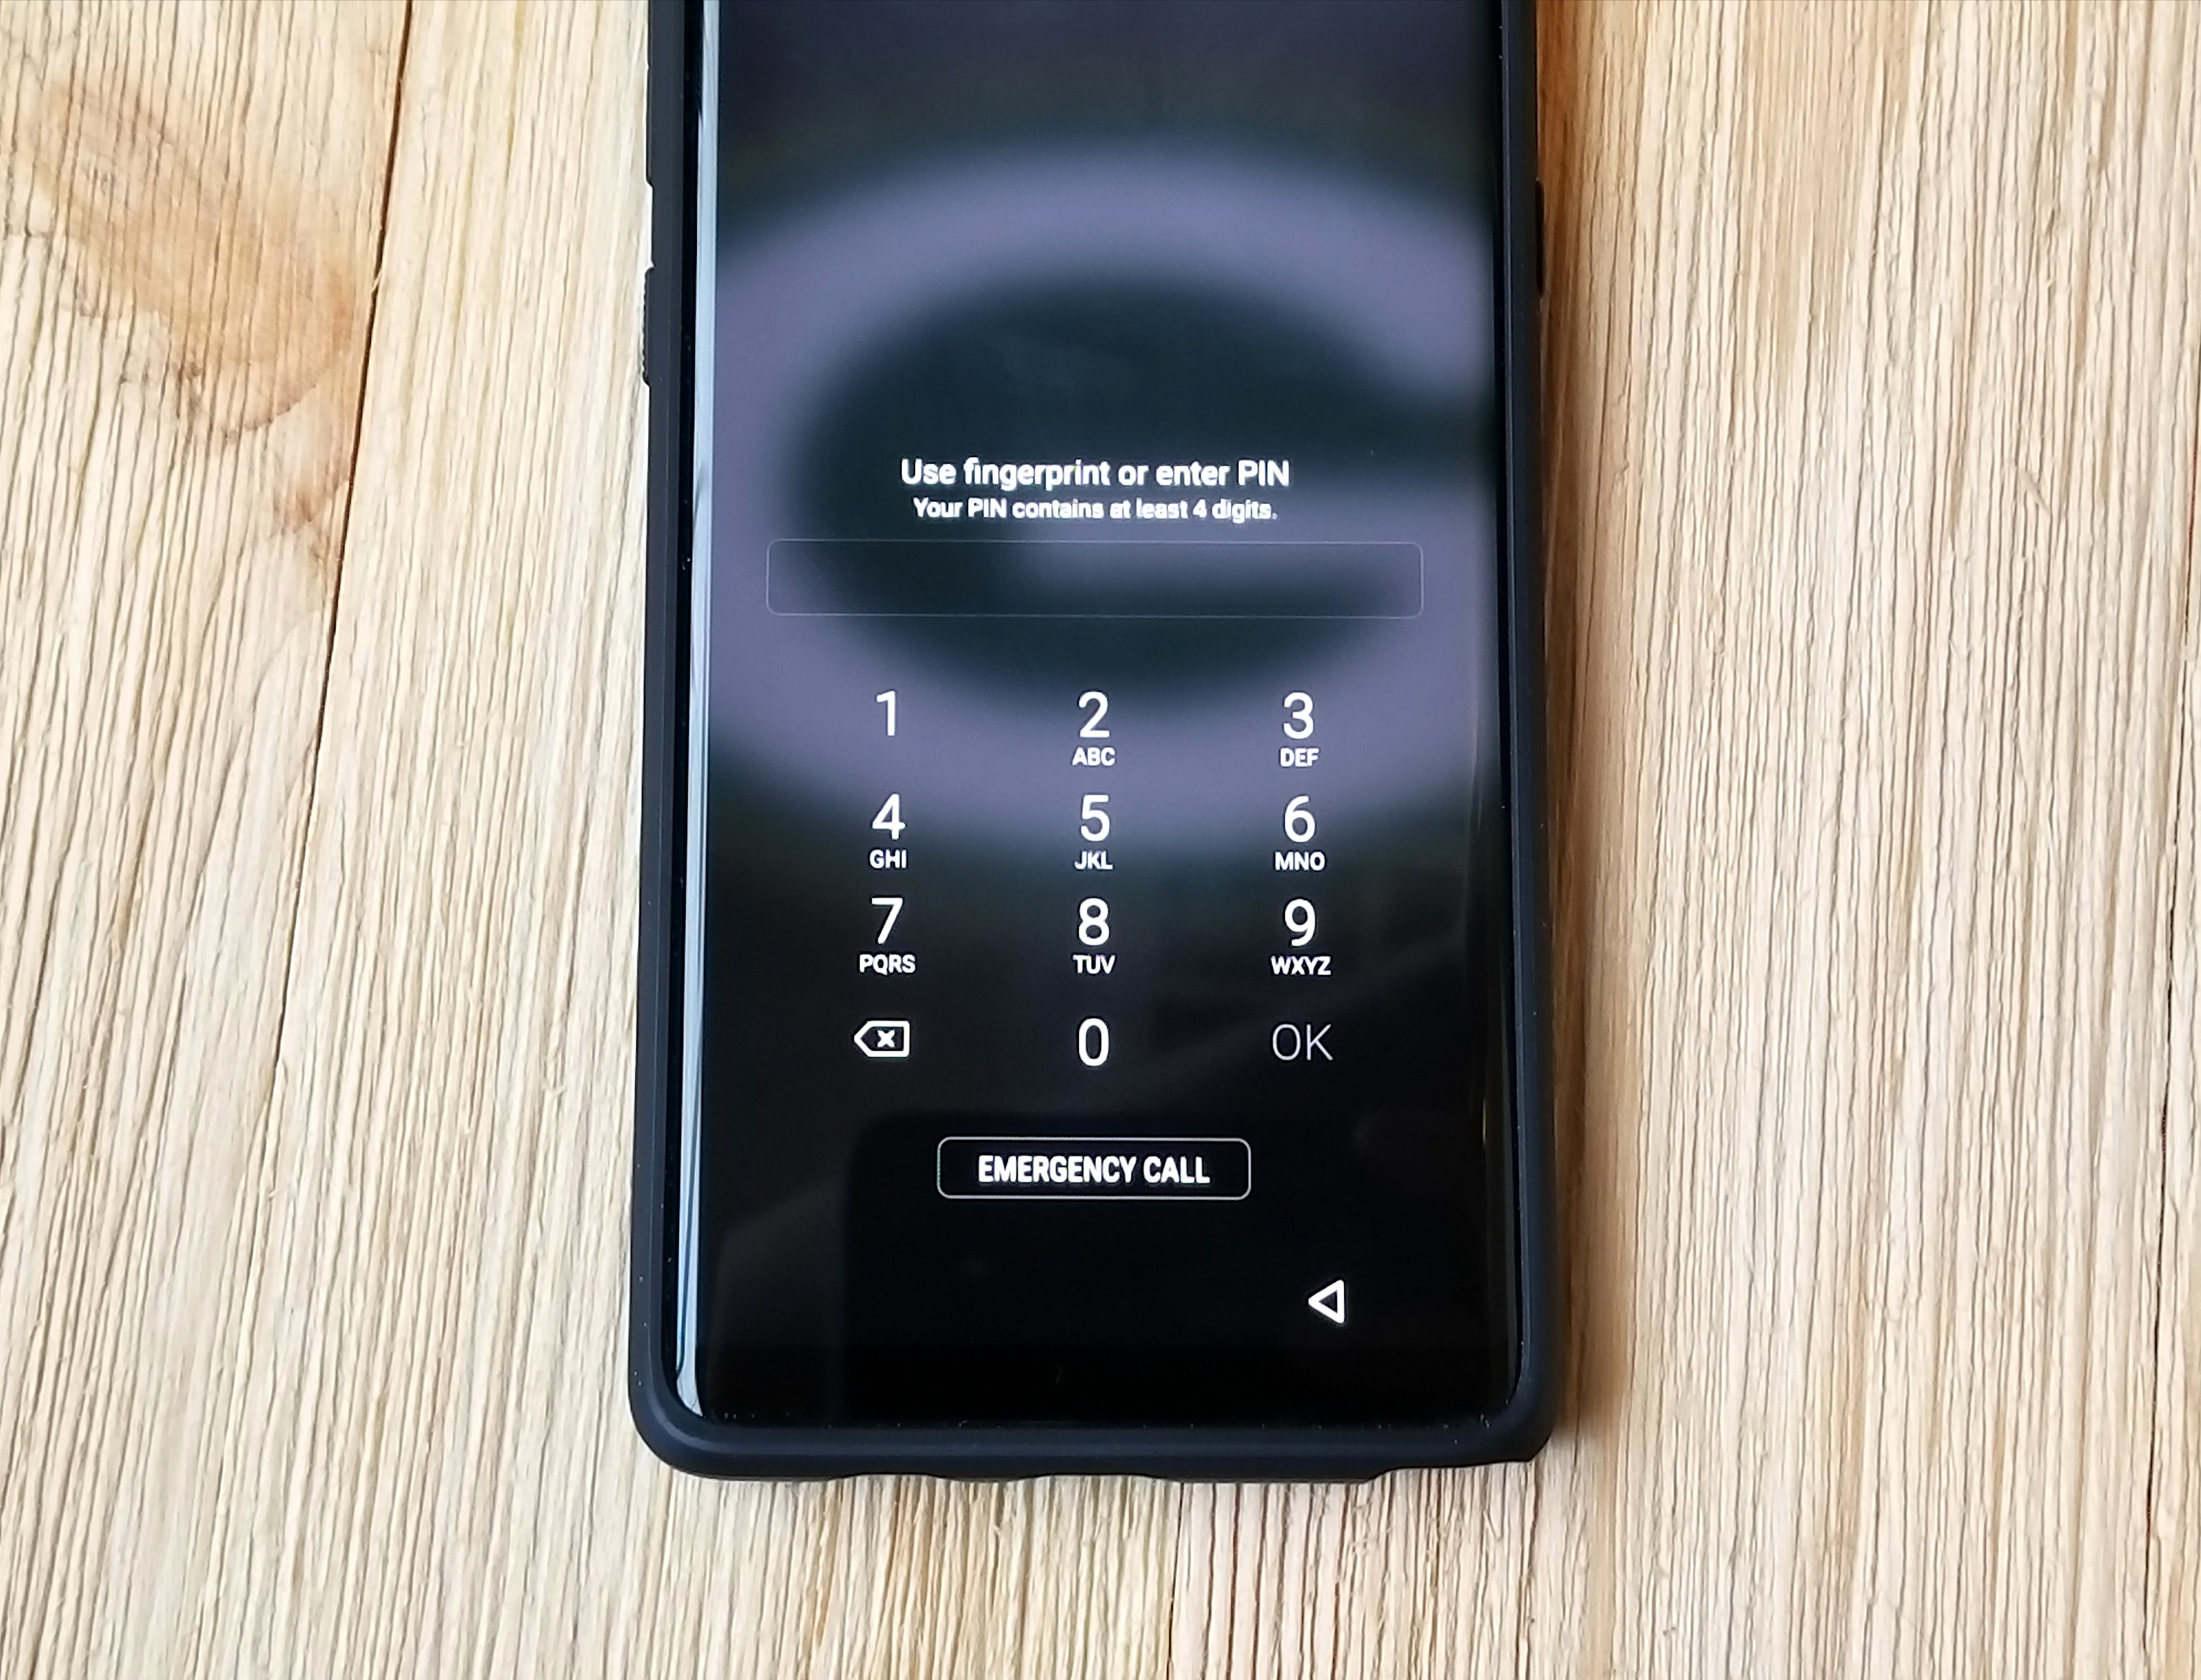 How to Remove the Emergency Call Button on Android's Lockscreen